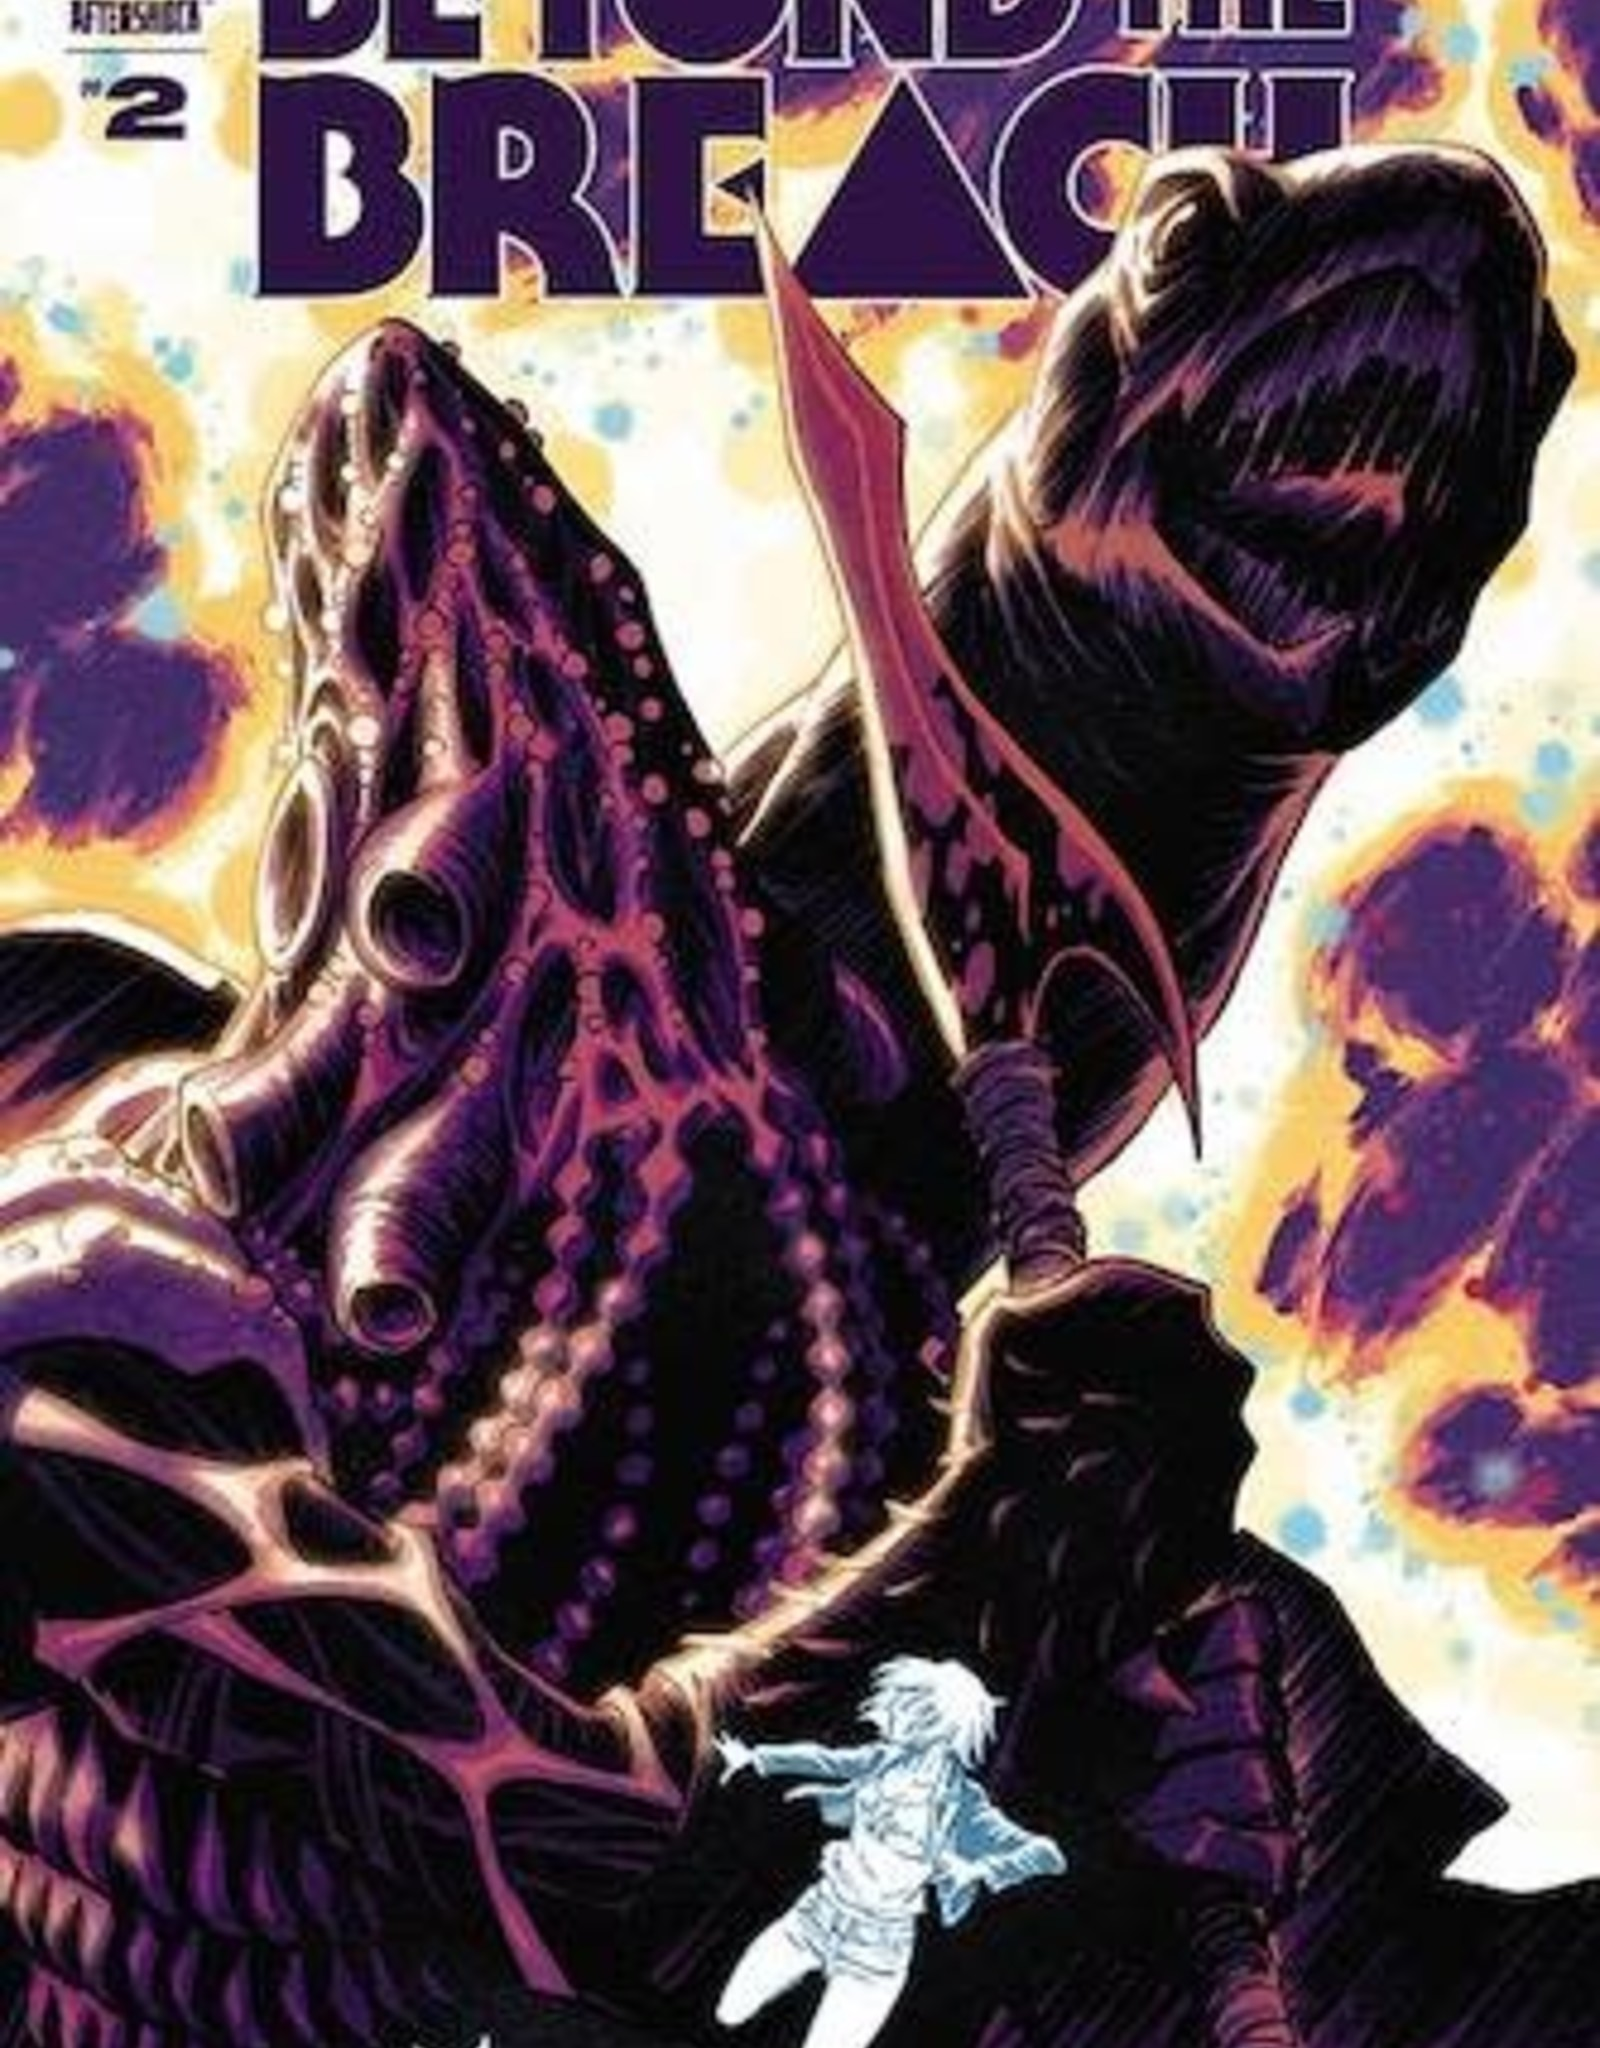 AfterShock Comics Beyond The Breach #2